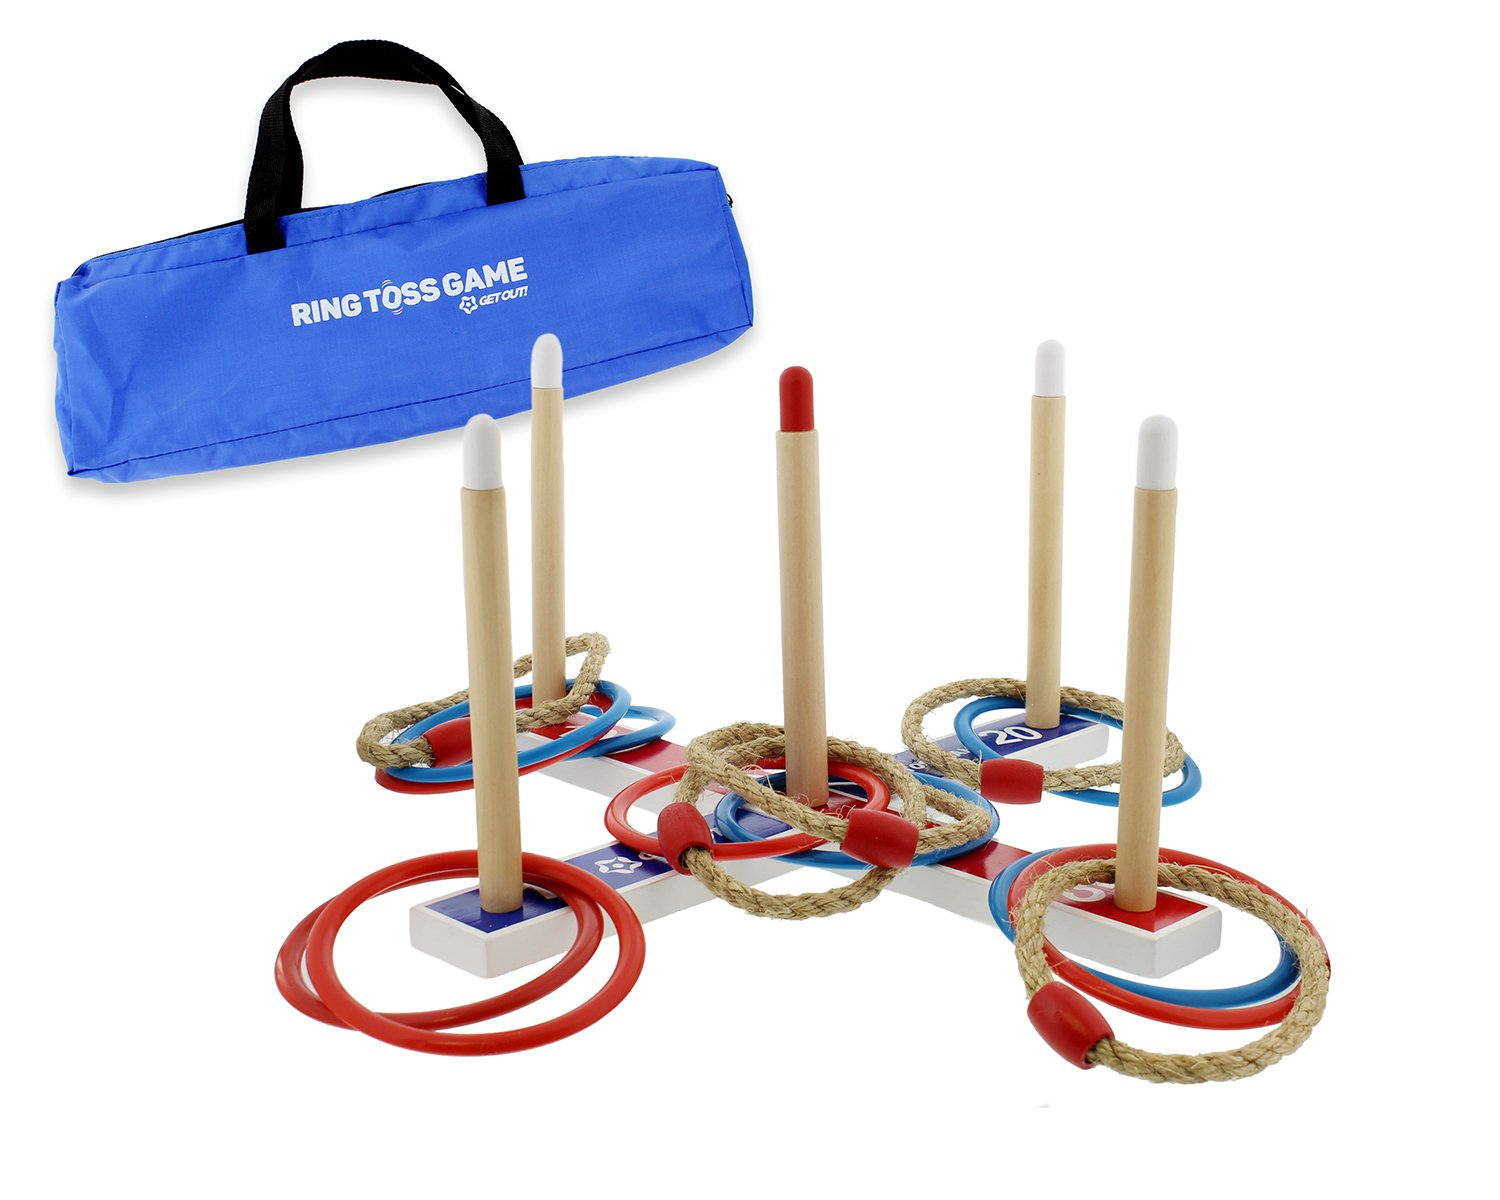 Get Out! Ring Toss Quoits Game Set with Carrying Bag – Red, Blue, and Rope Tossing Rings – Outdoor Ring Toss for All Ages